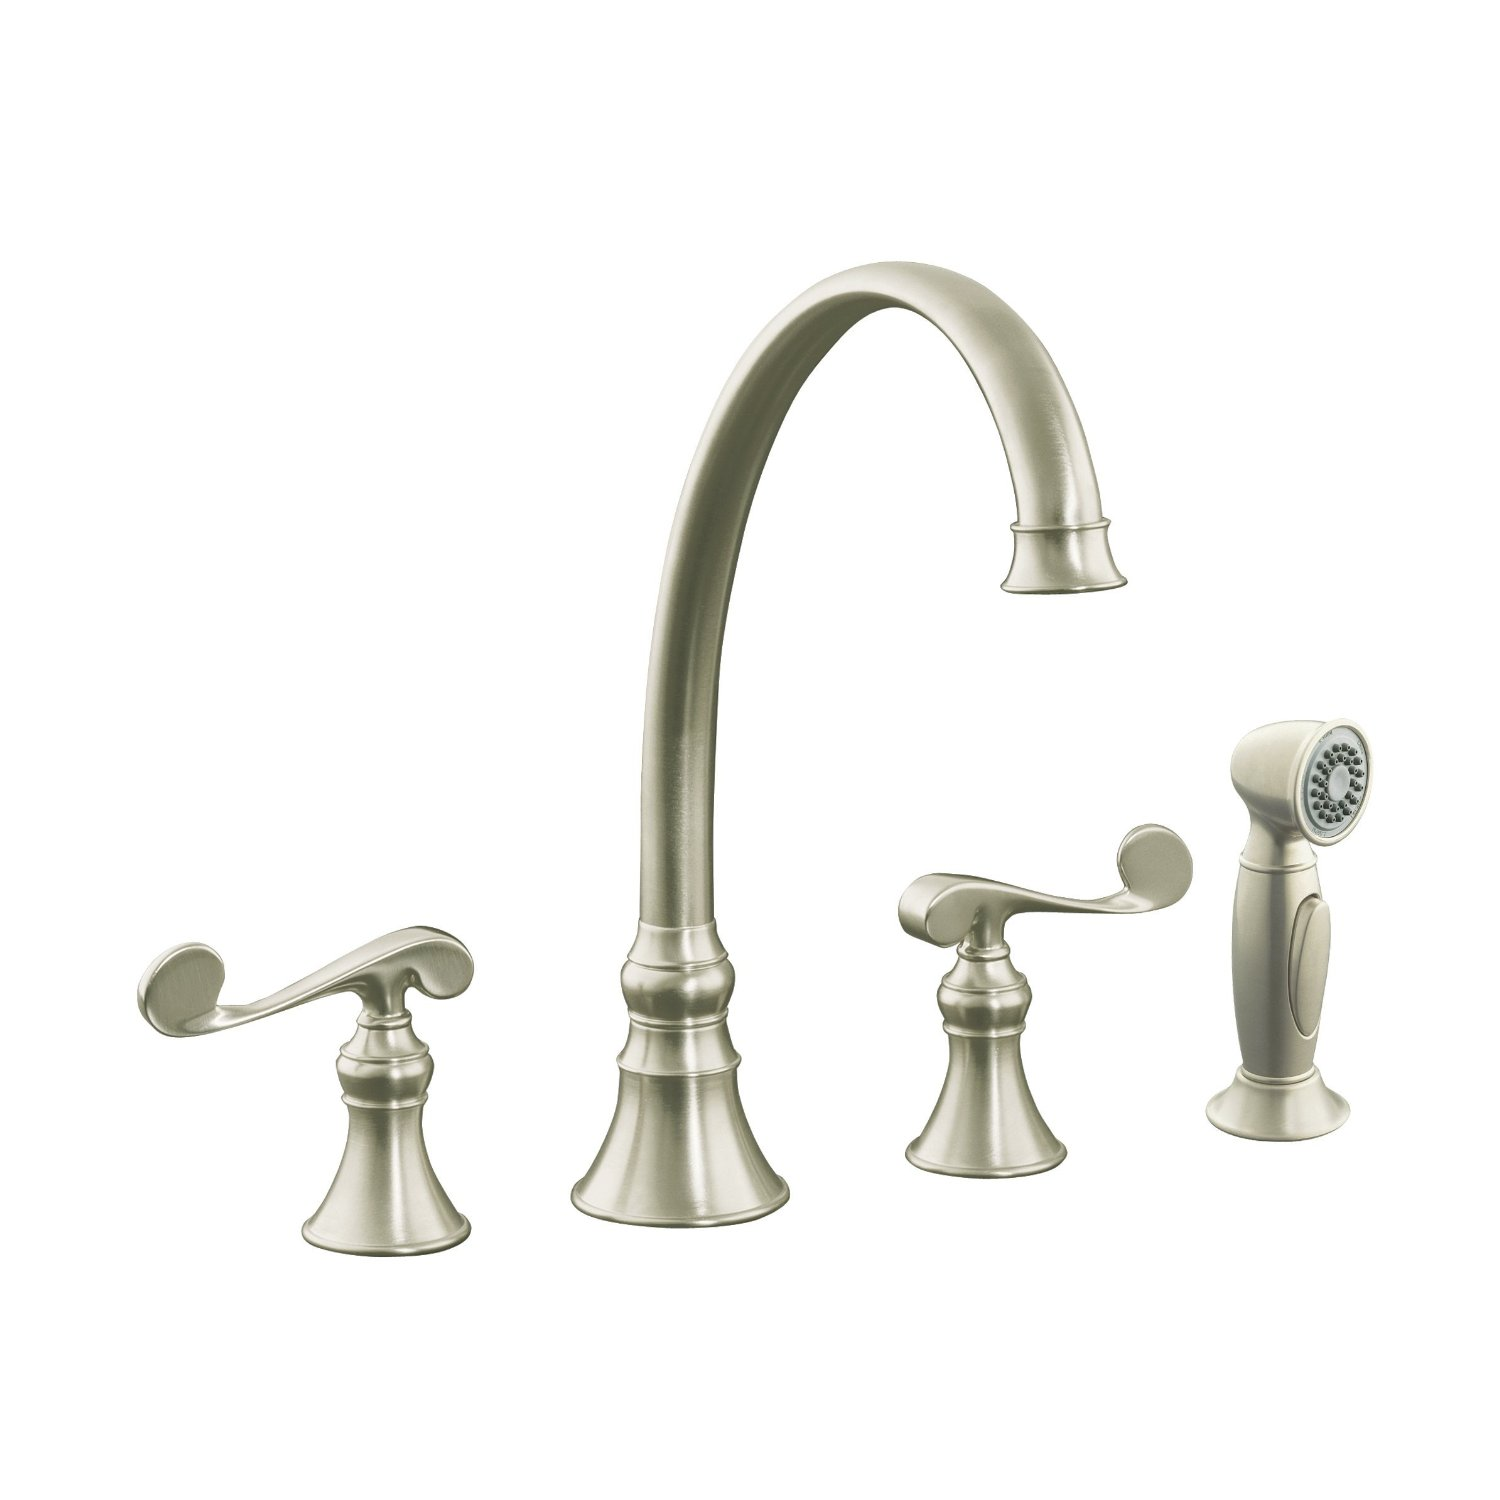 Shop for Best KOHLER K 4 BN Revival Kitchen Sink